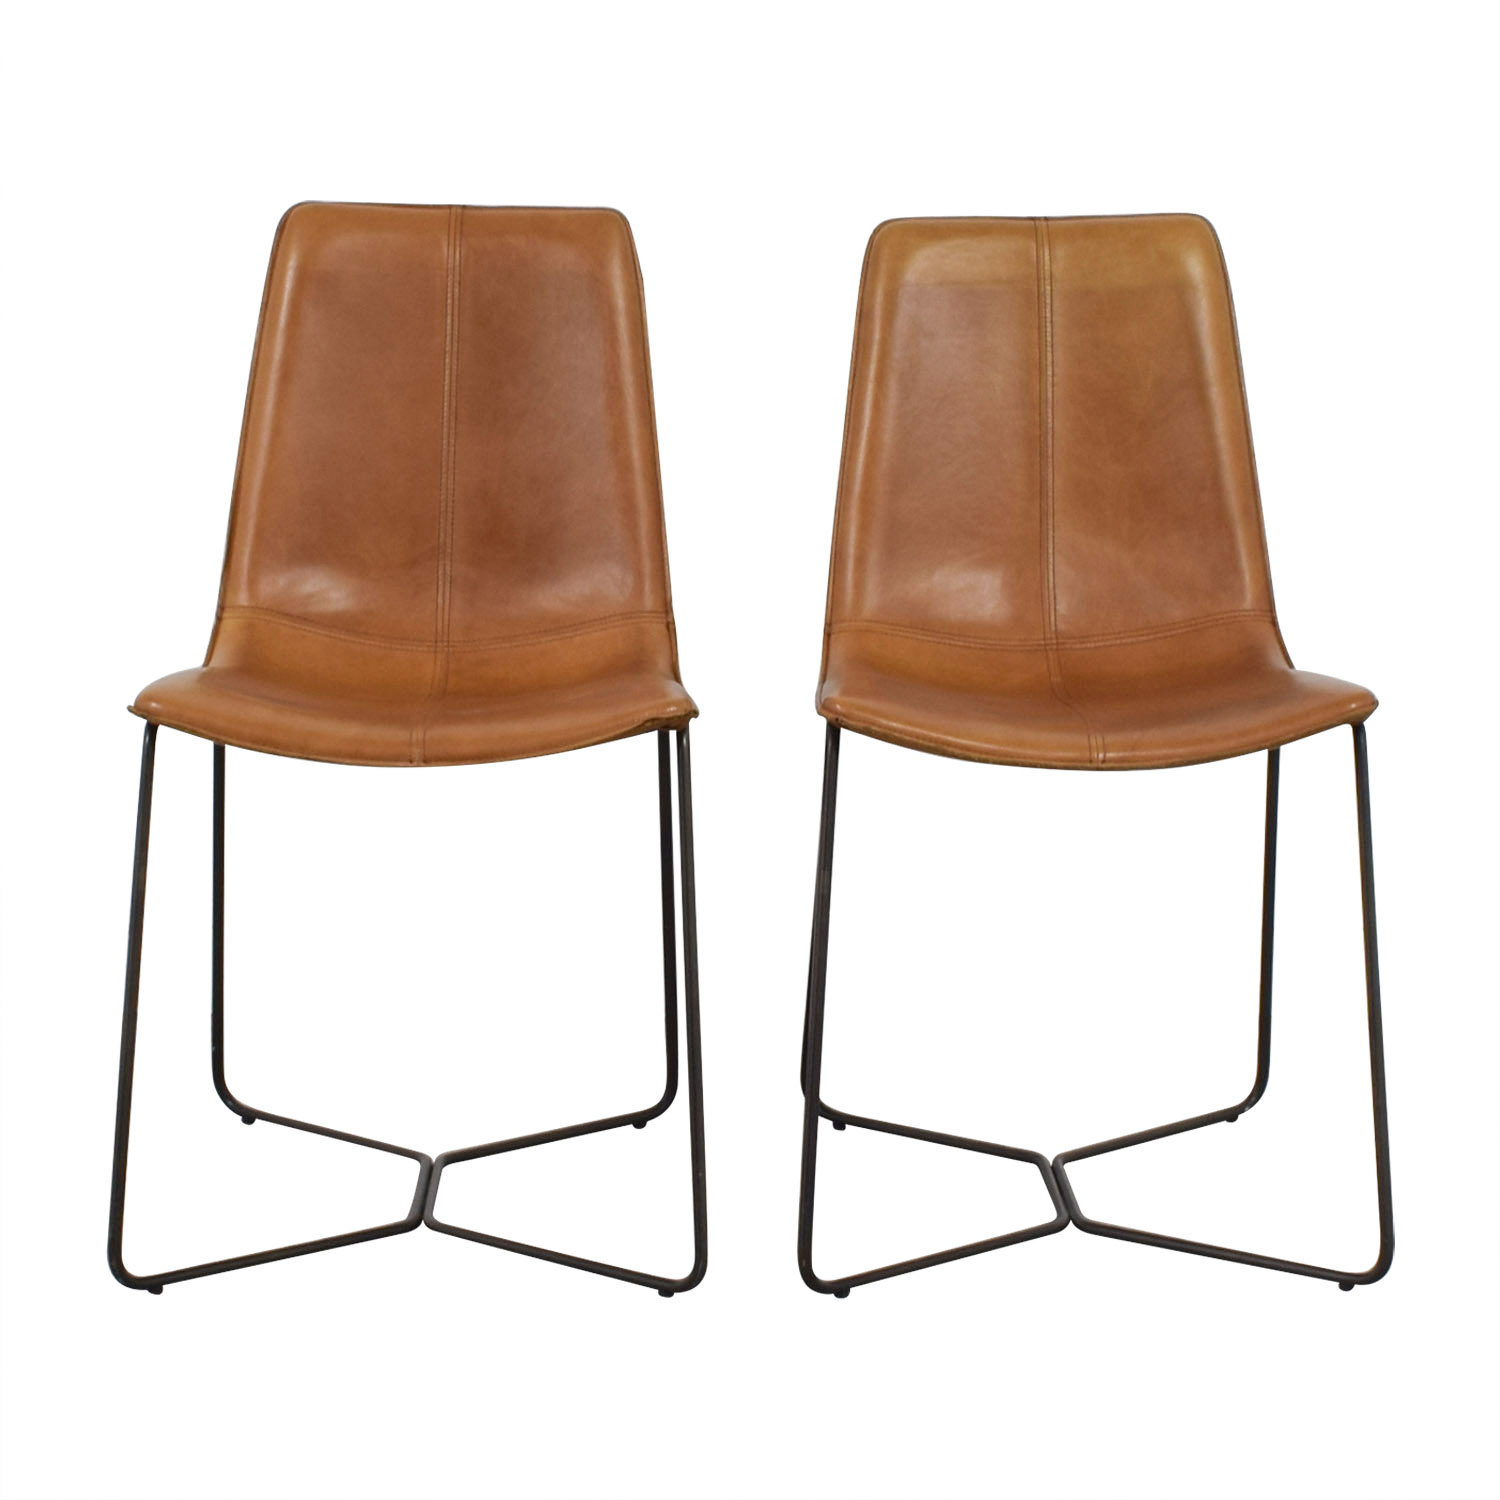 46 Off West Elm West Elm Leather Slope Dining Chairs Chairs